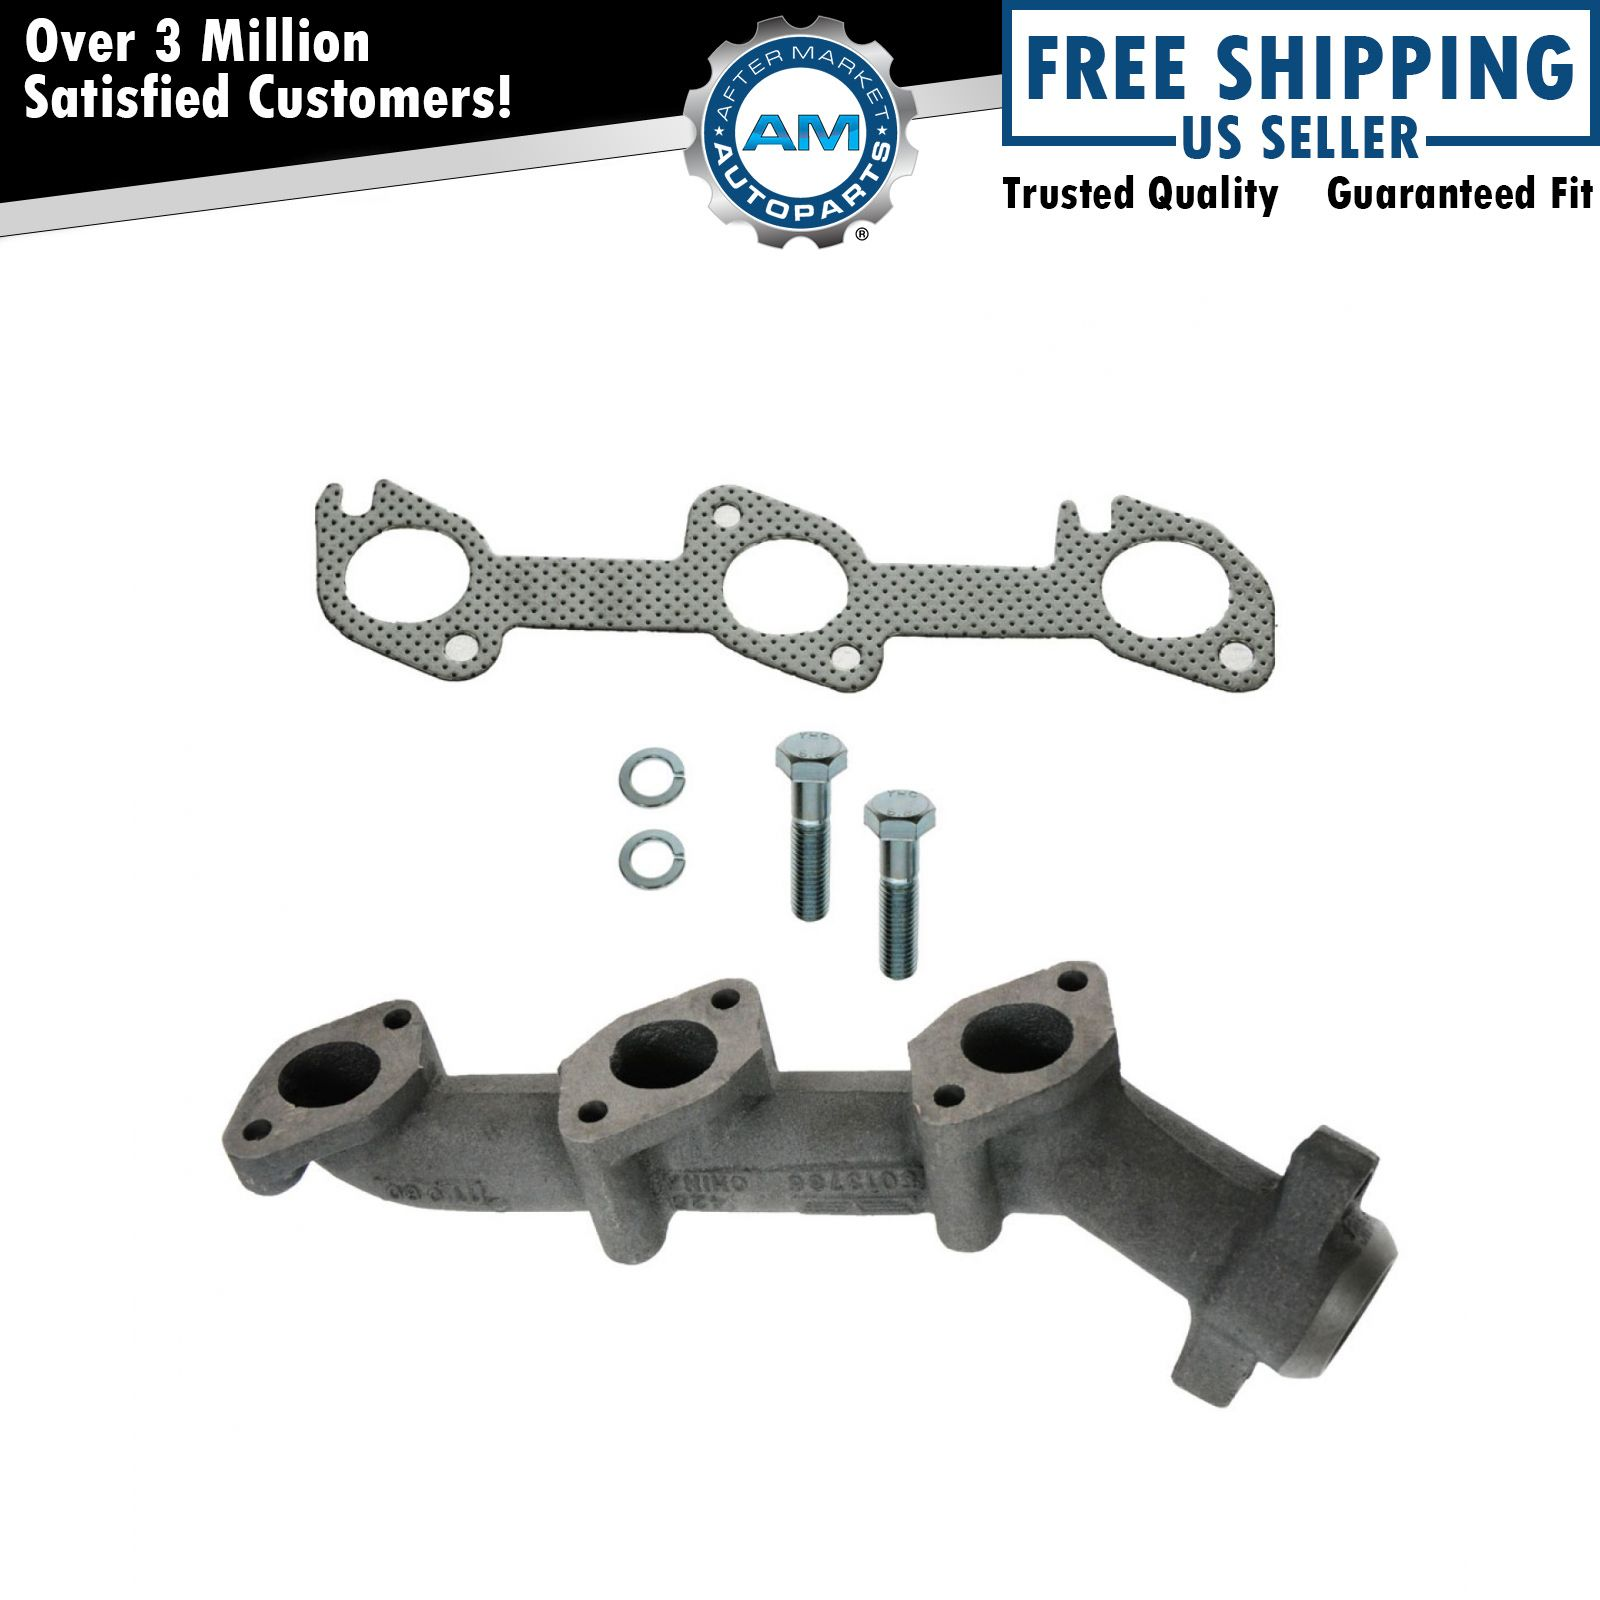 Dorman exhaust manifold kit for ford ranger bronco